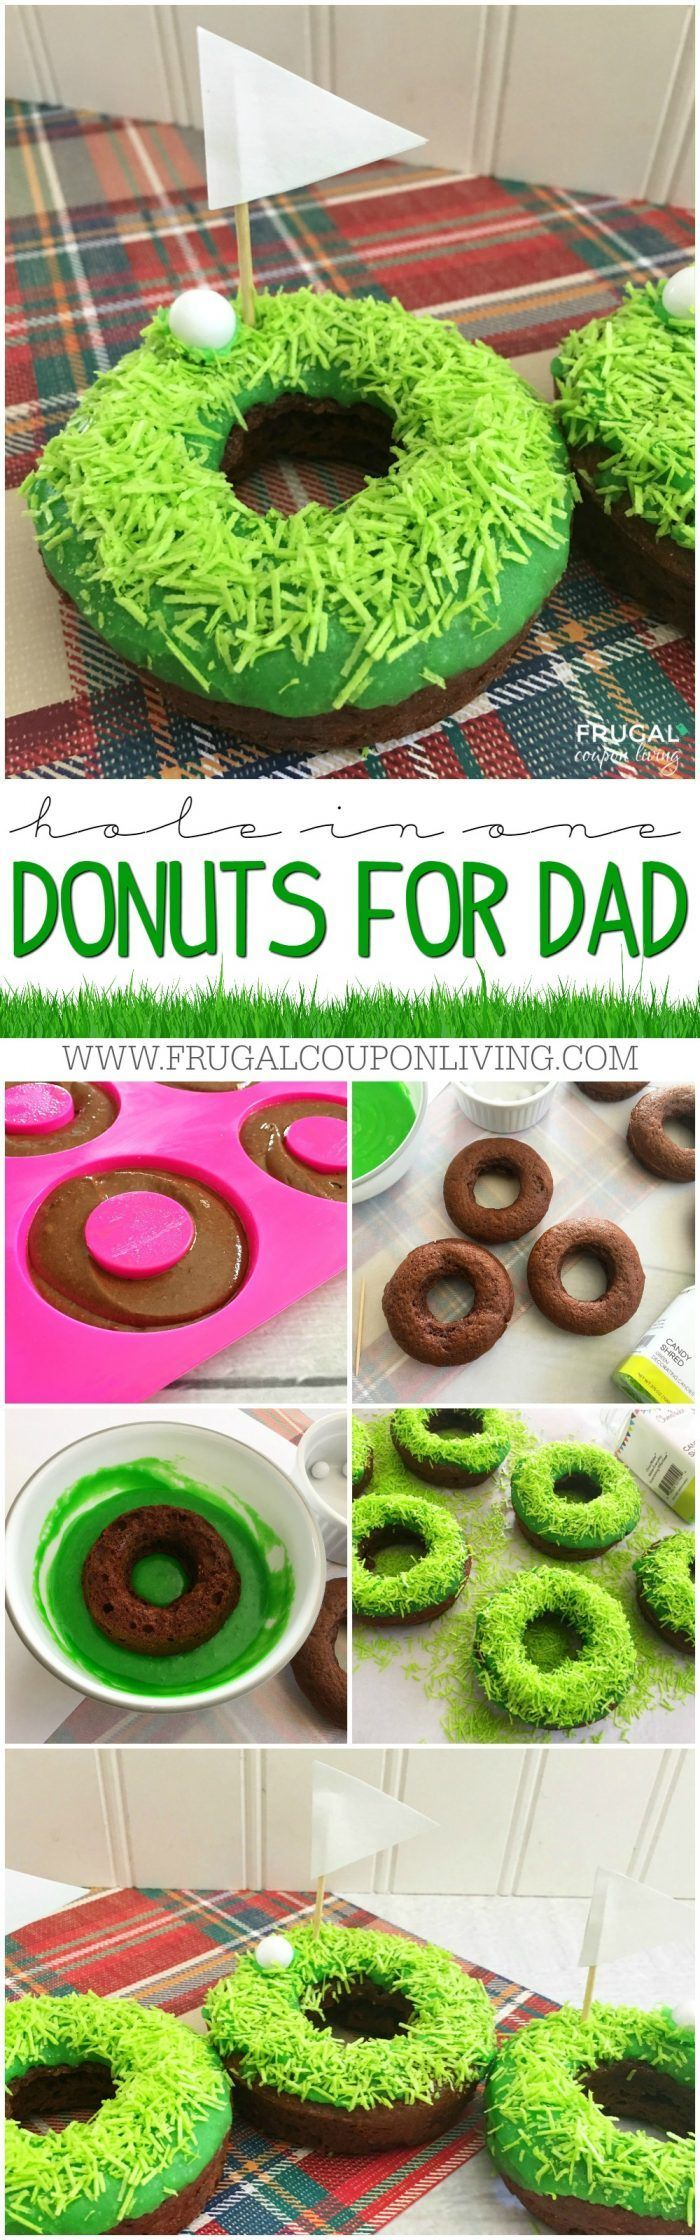 We love these Golf Donuts for Dad! We made an easy Father's Day Dessert that is ...